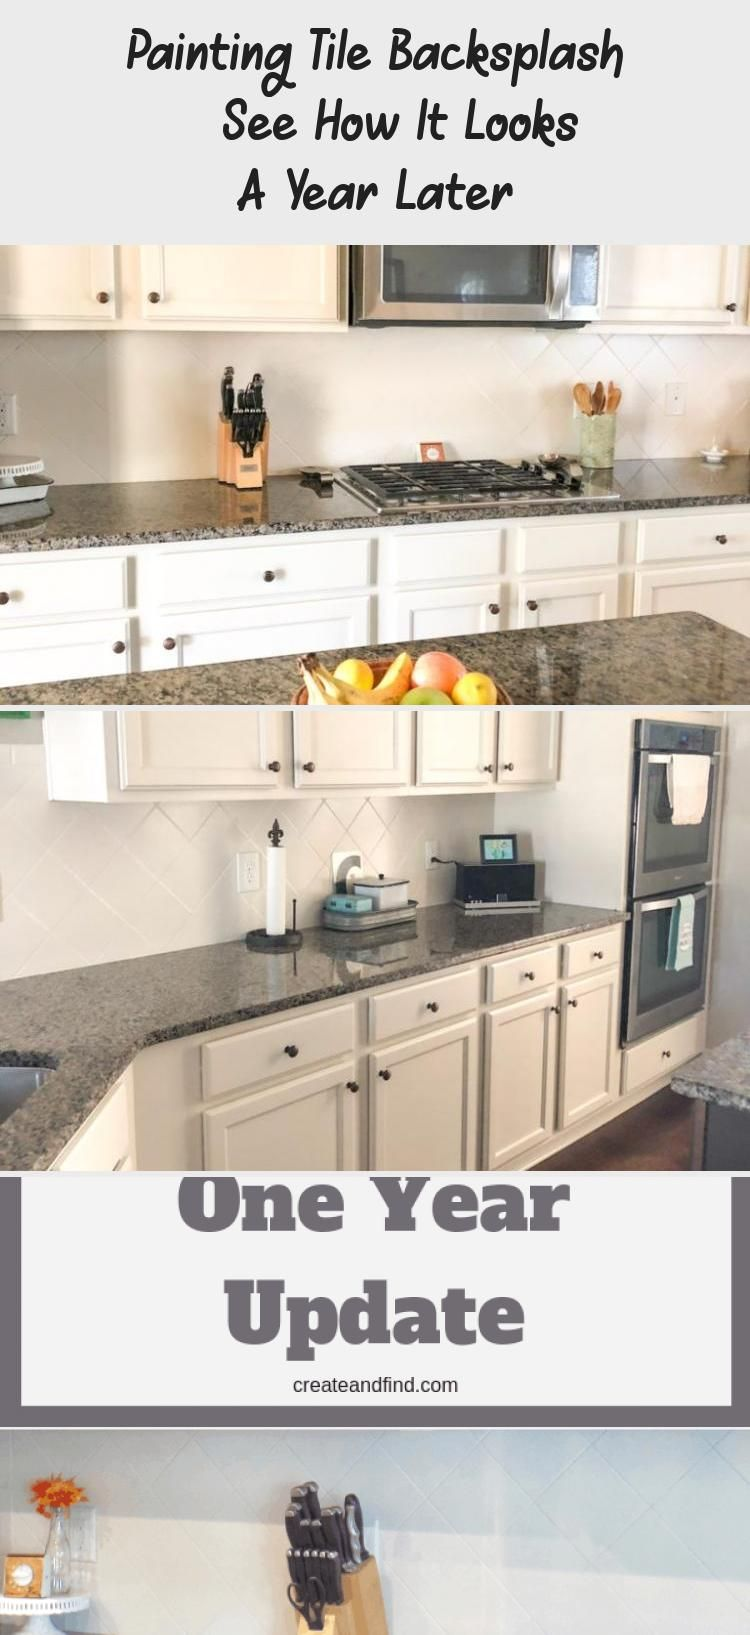 Painting Tile Backsplash See How It Looks A Year Later Kitchen Tiles Latest Kitchen Designs Painting Tile Backsplash